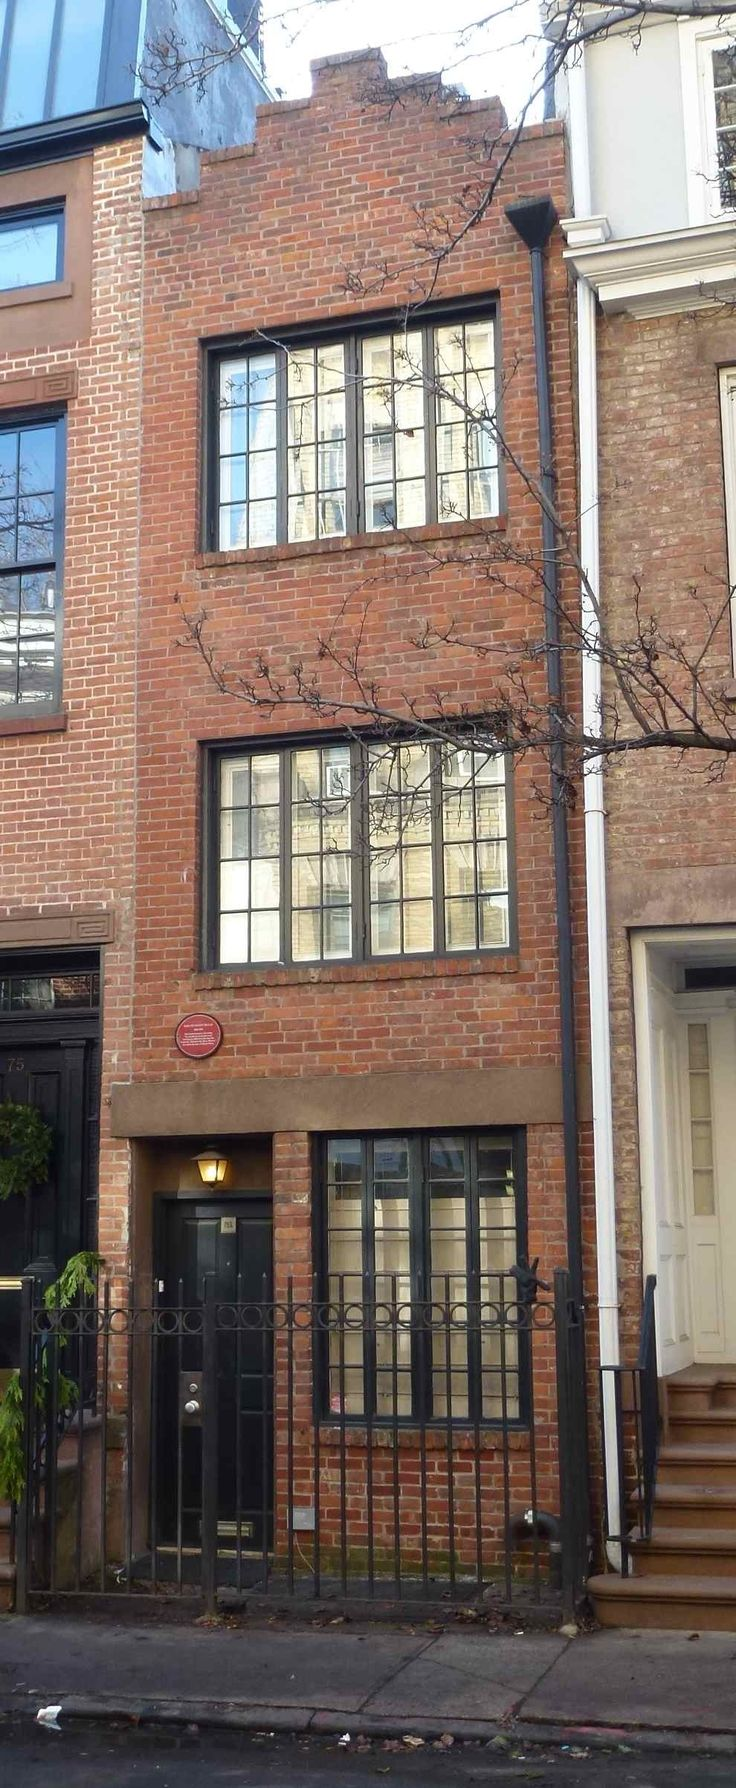 The narrowest house in NYC is in the West Village: 75 1/2 Bedford Street is just over 9 feet wide.